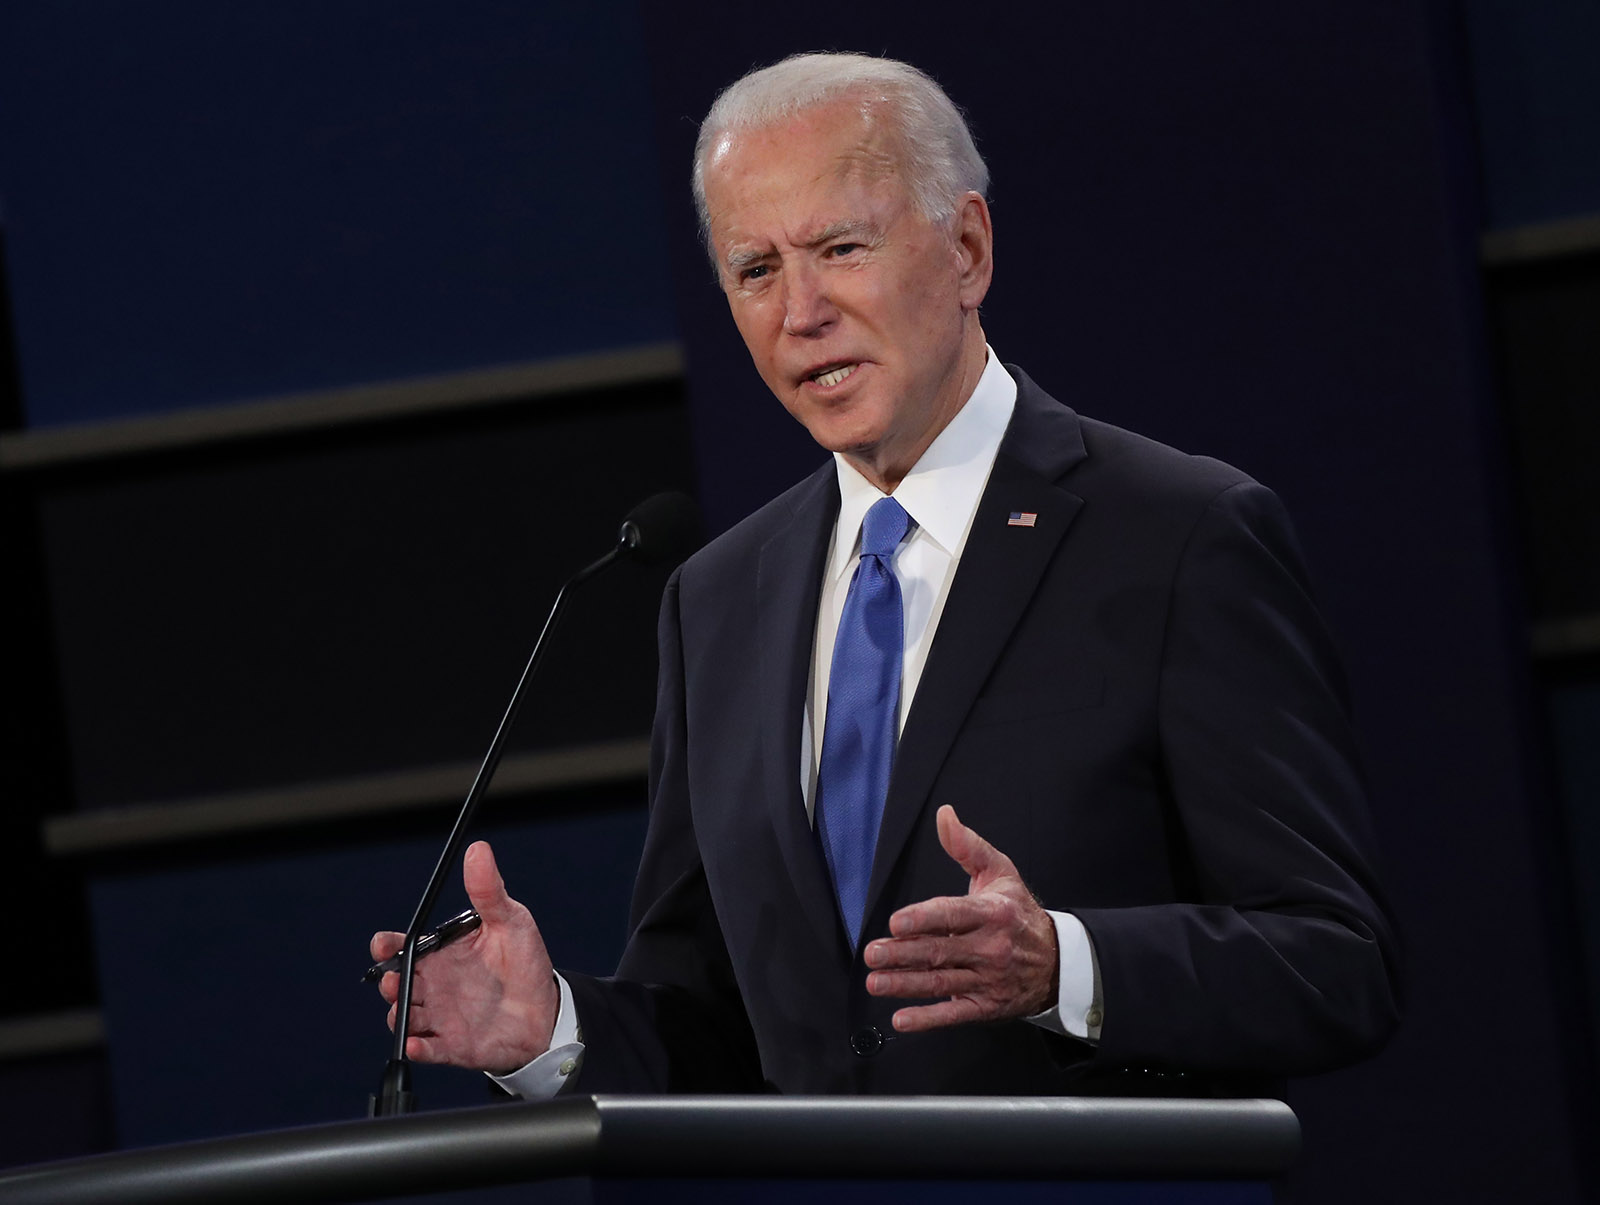 Democratic presidential nominee Joe Biden participates in the final presidential debate against President Donald Trump at Belmont University on October 22 in Nashville.